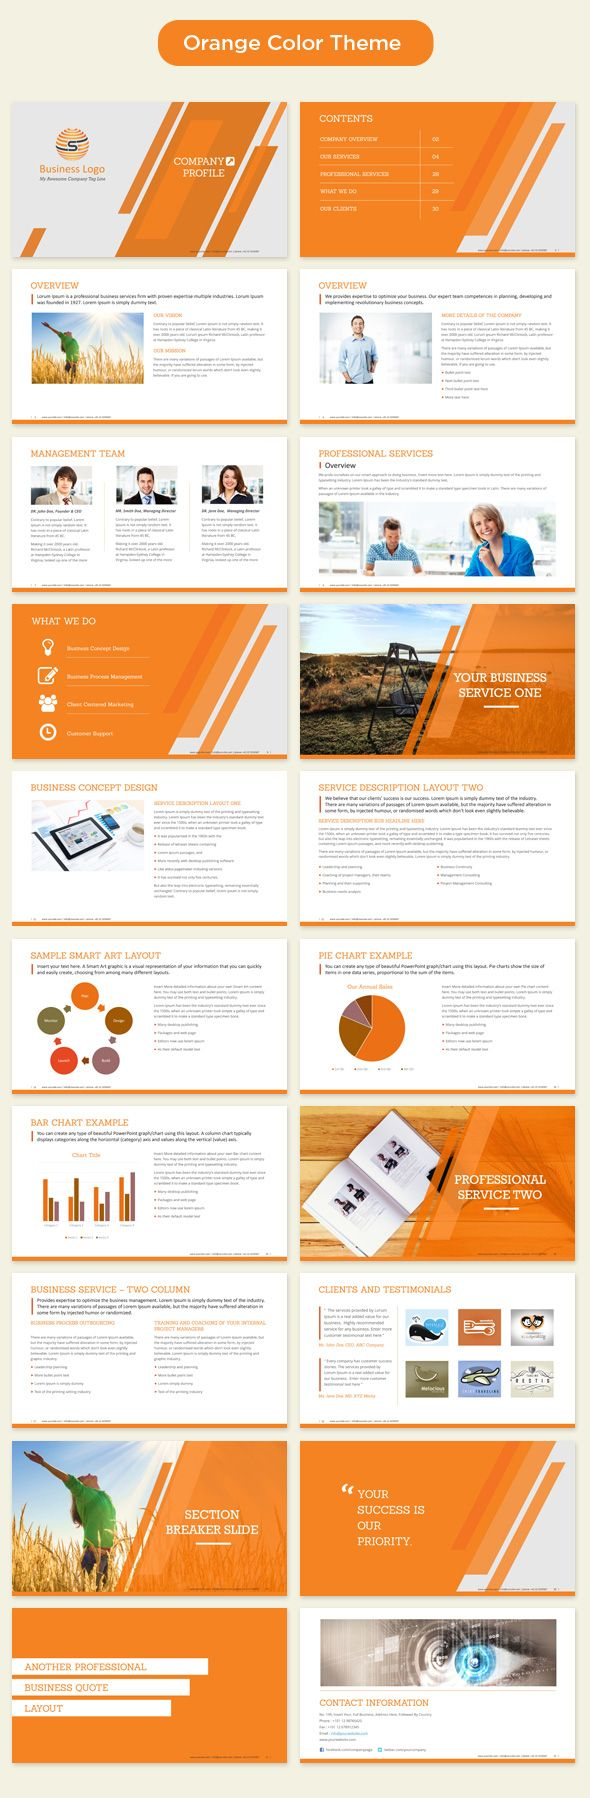 Company profile template PowerPoint The template is available in – Free Business Profile Template